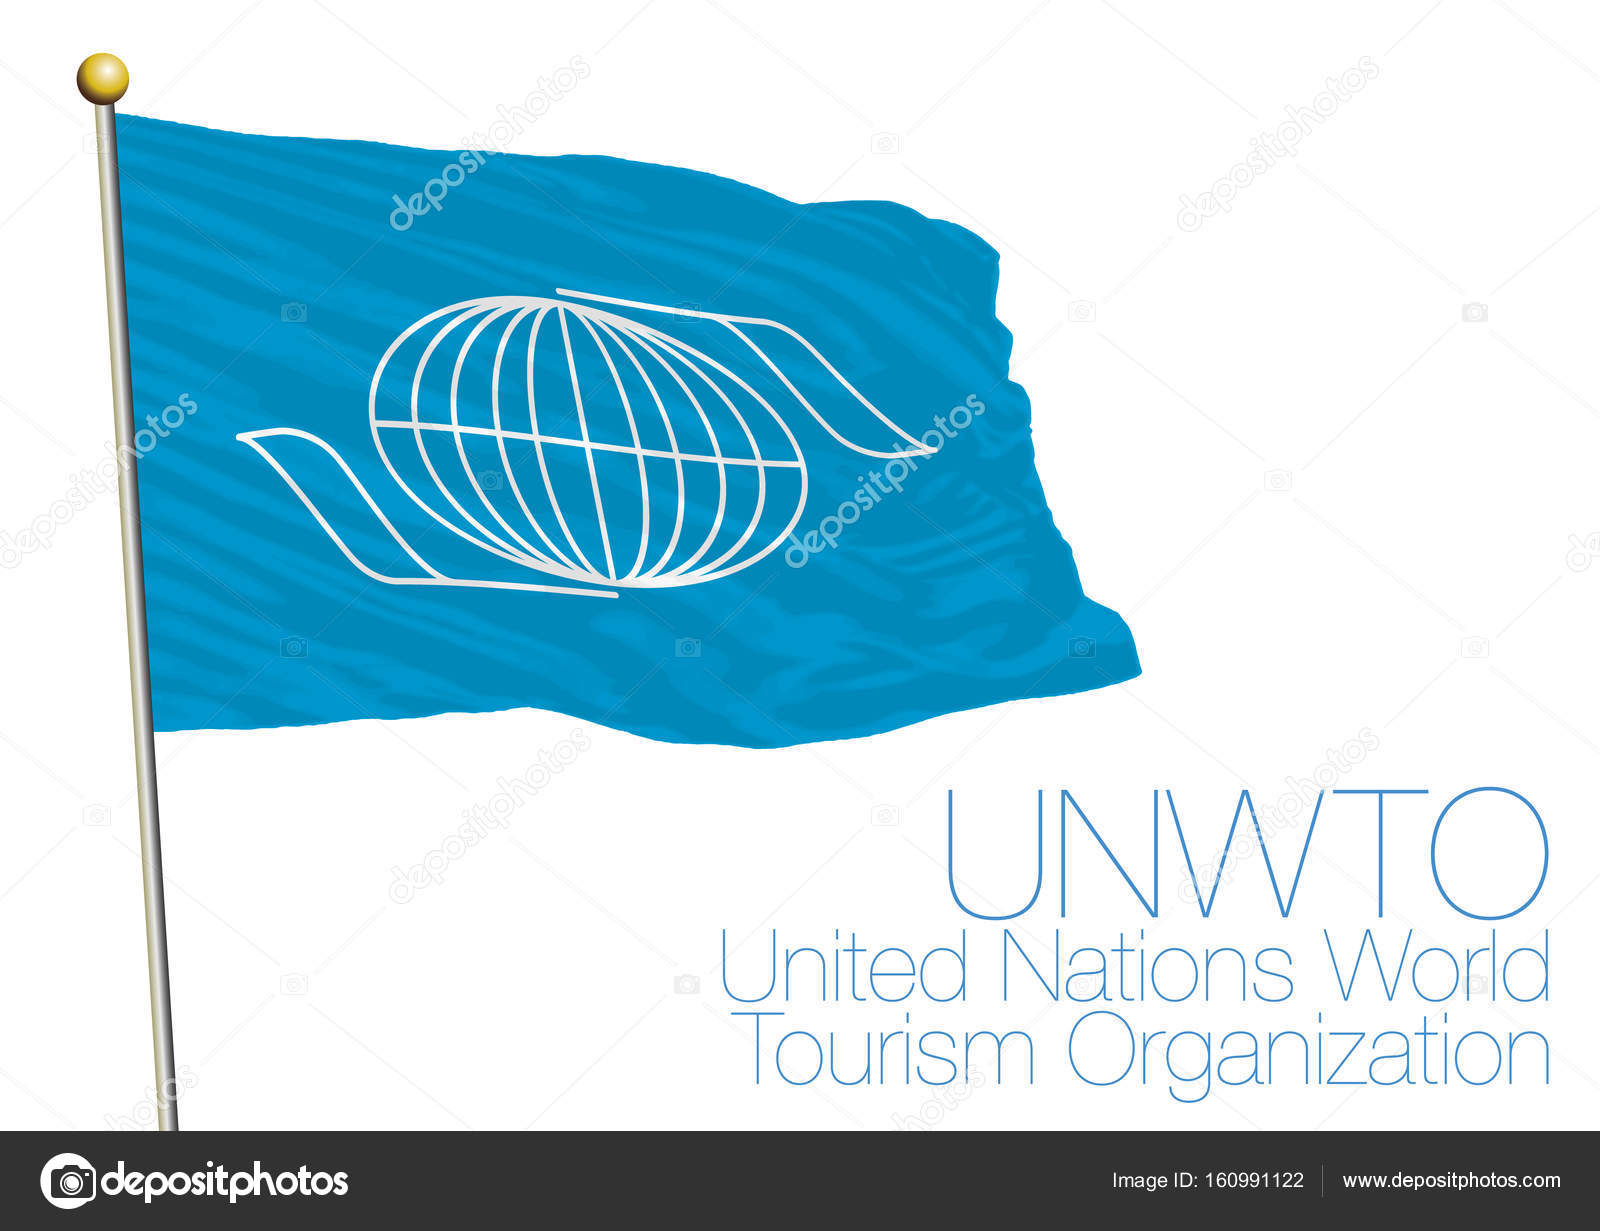 Unwto united nations world tourism organization flag and symbol unwto united nations world tourism organization flag and symbol stock vector buycottarizona Gallery